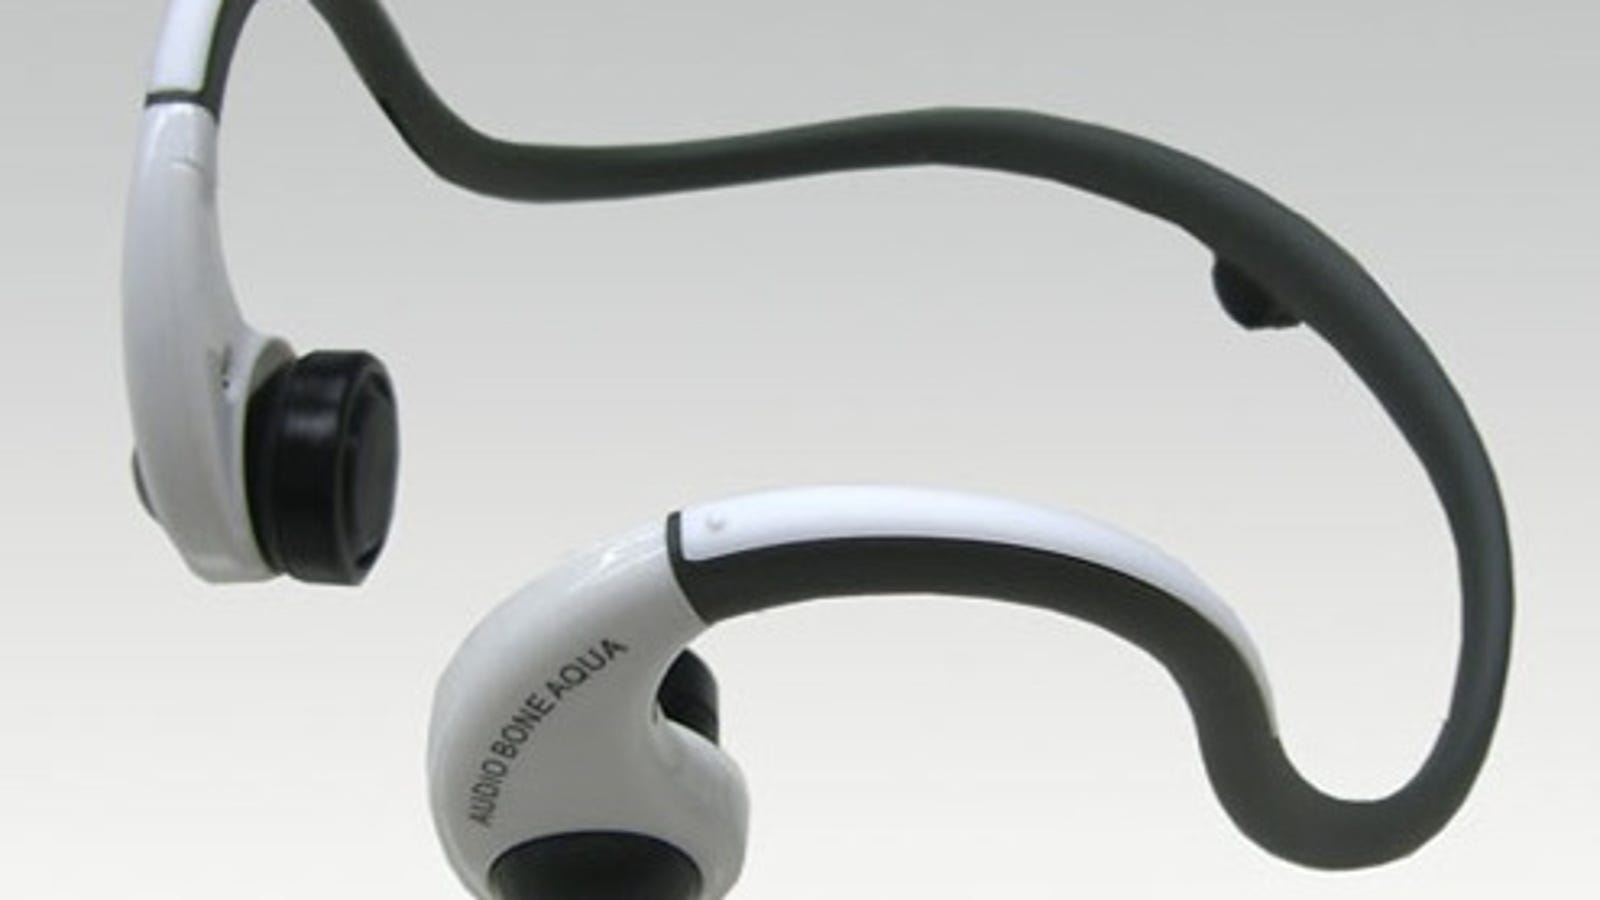 Audio Bone 1.0, Possibly the First Non-Dorky Bone-Conduction Headphones